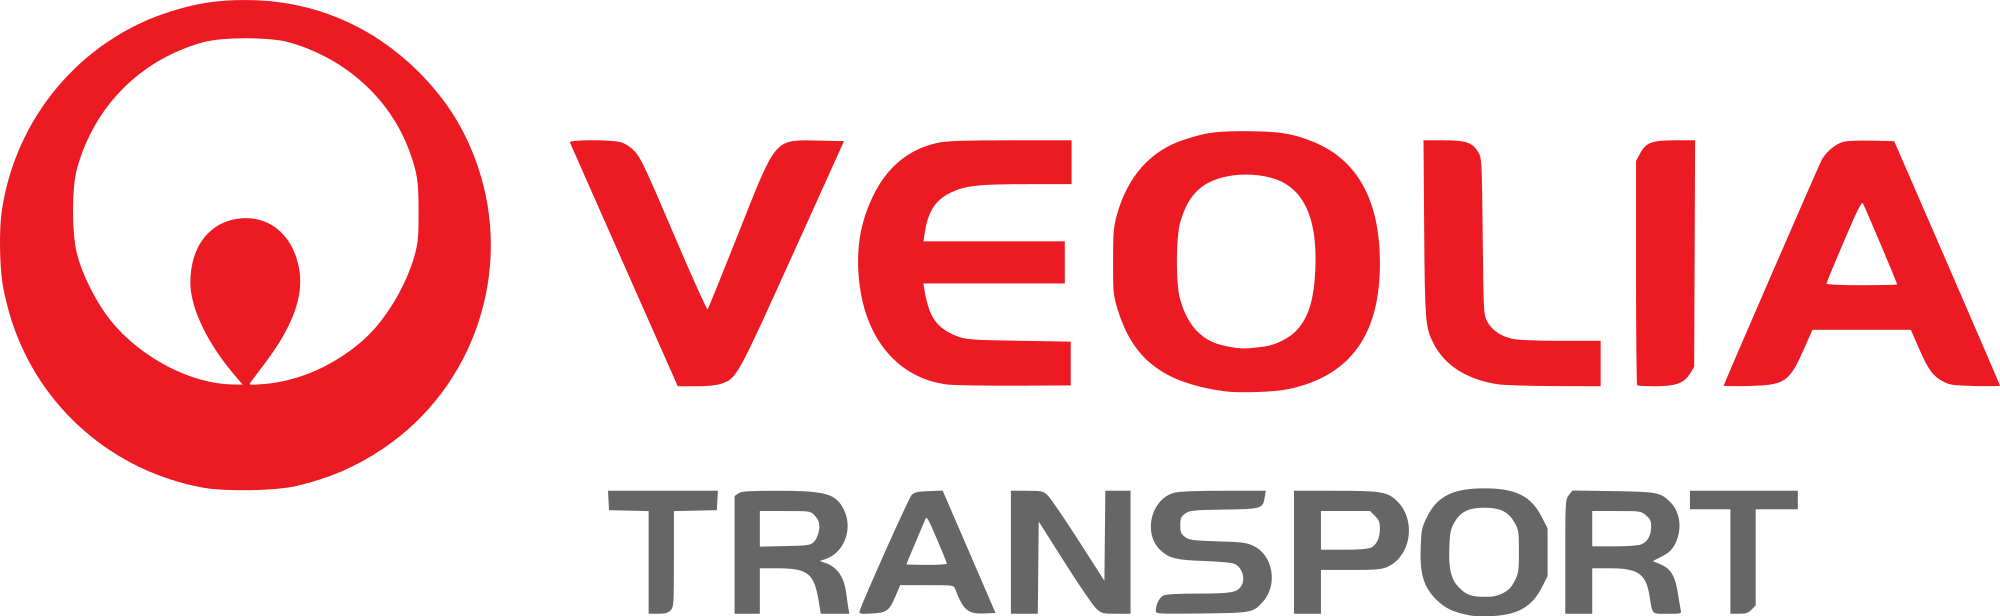 Logotipo de Veolia Transport